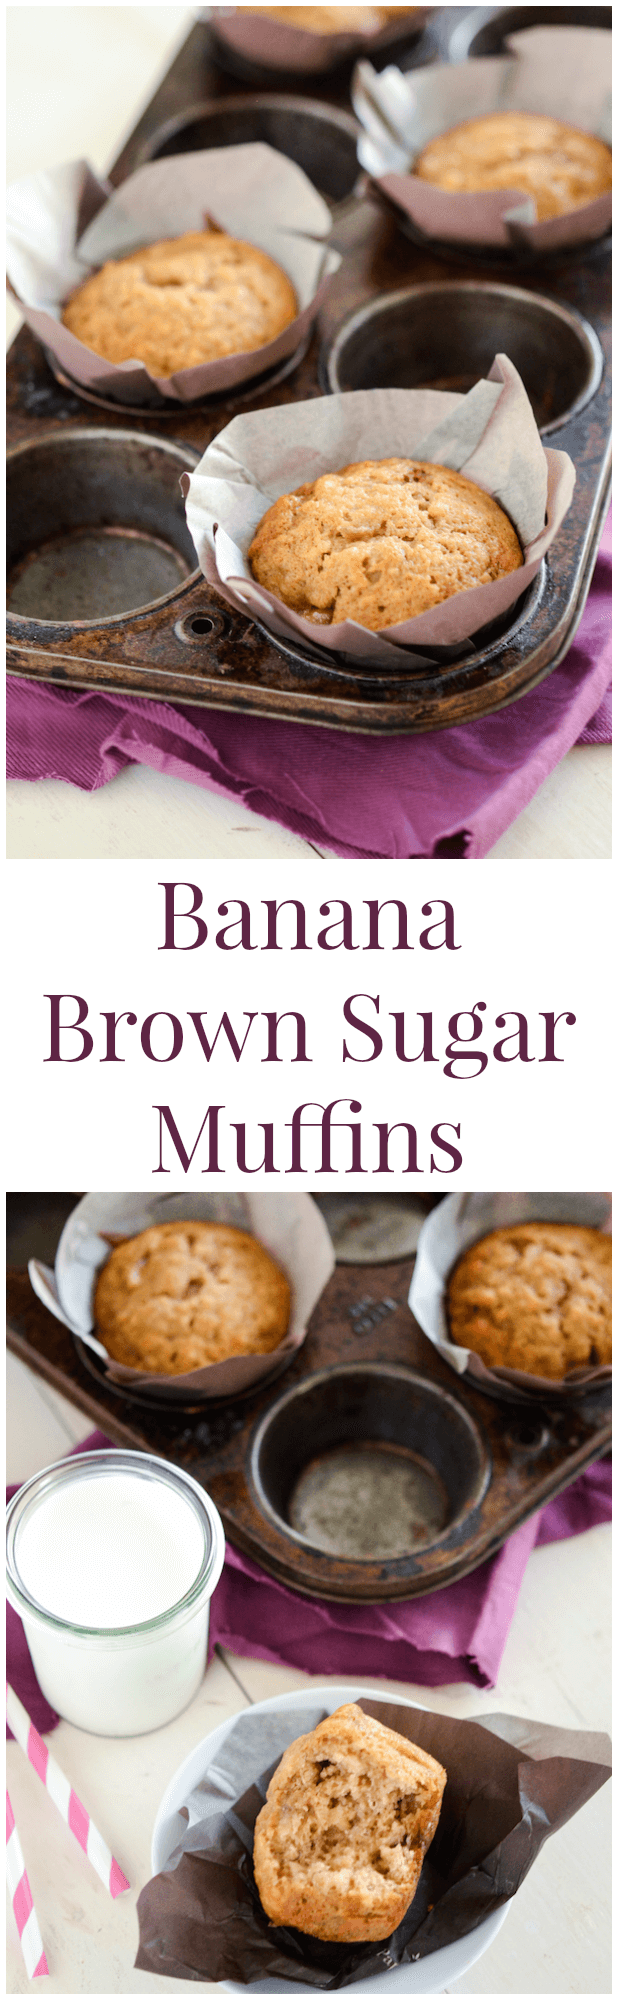 Banana Brown Sugar Muffins! They only take 20 minutes to make!